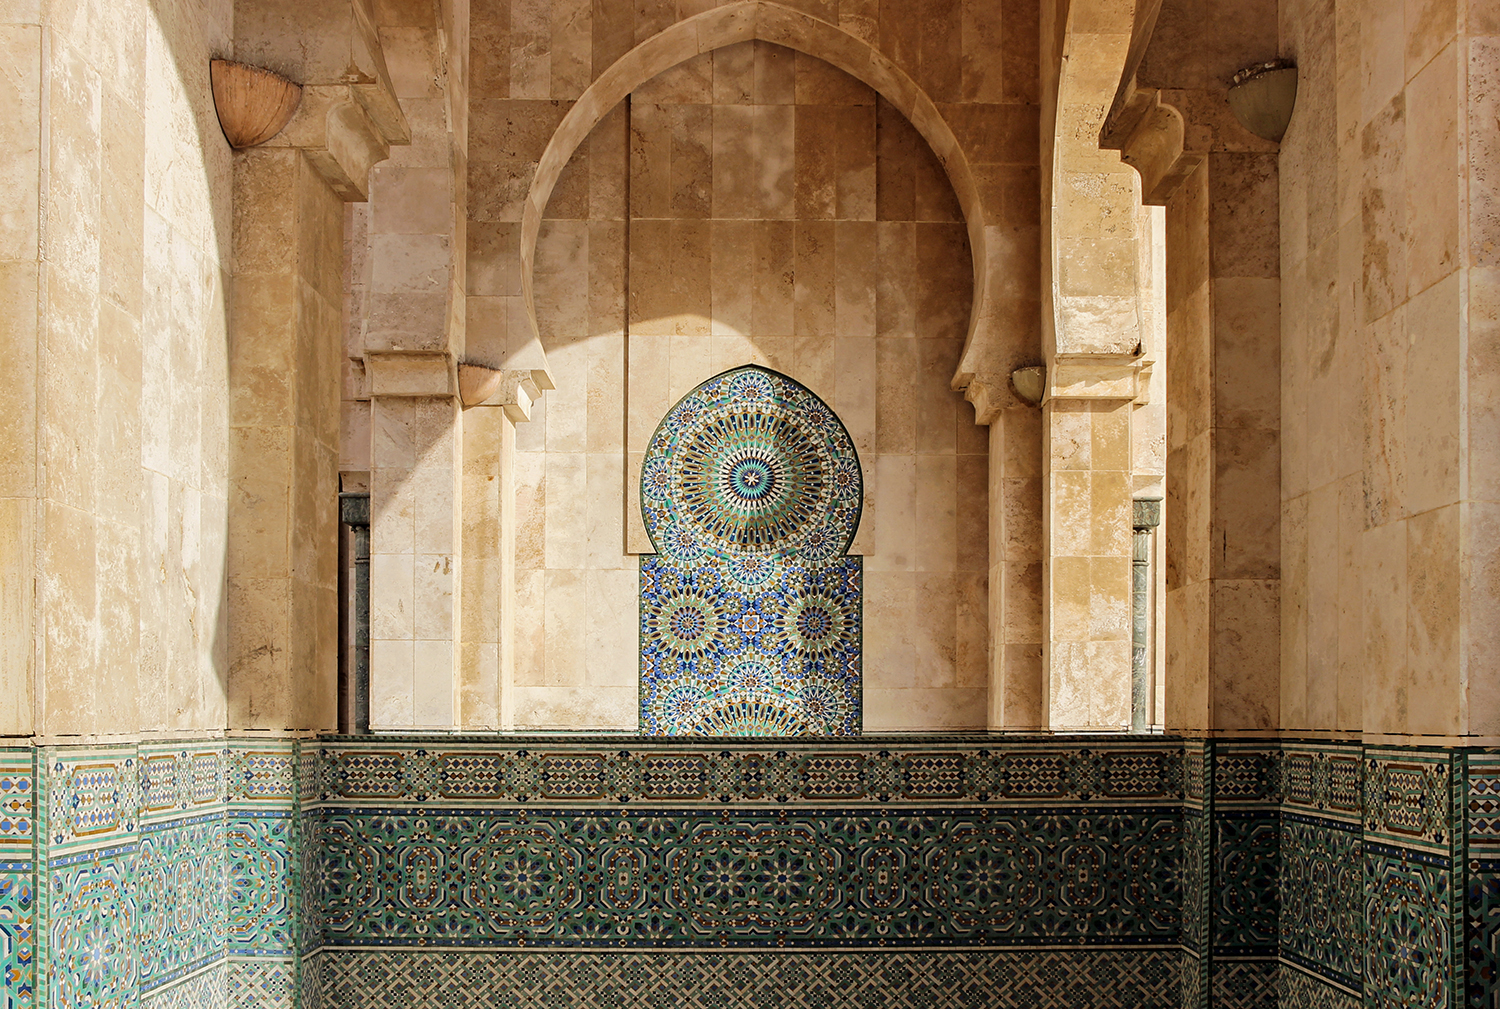 architecture at Hassan II Mosque in Casablanca